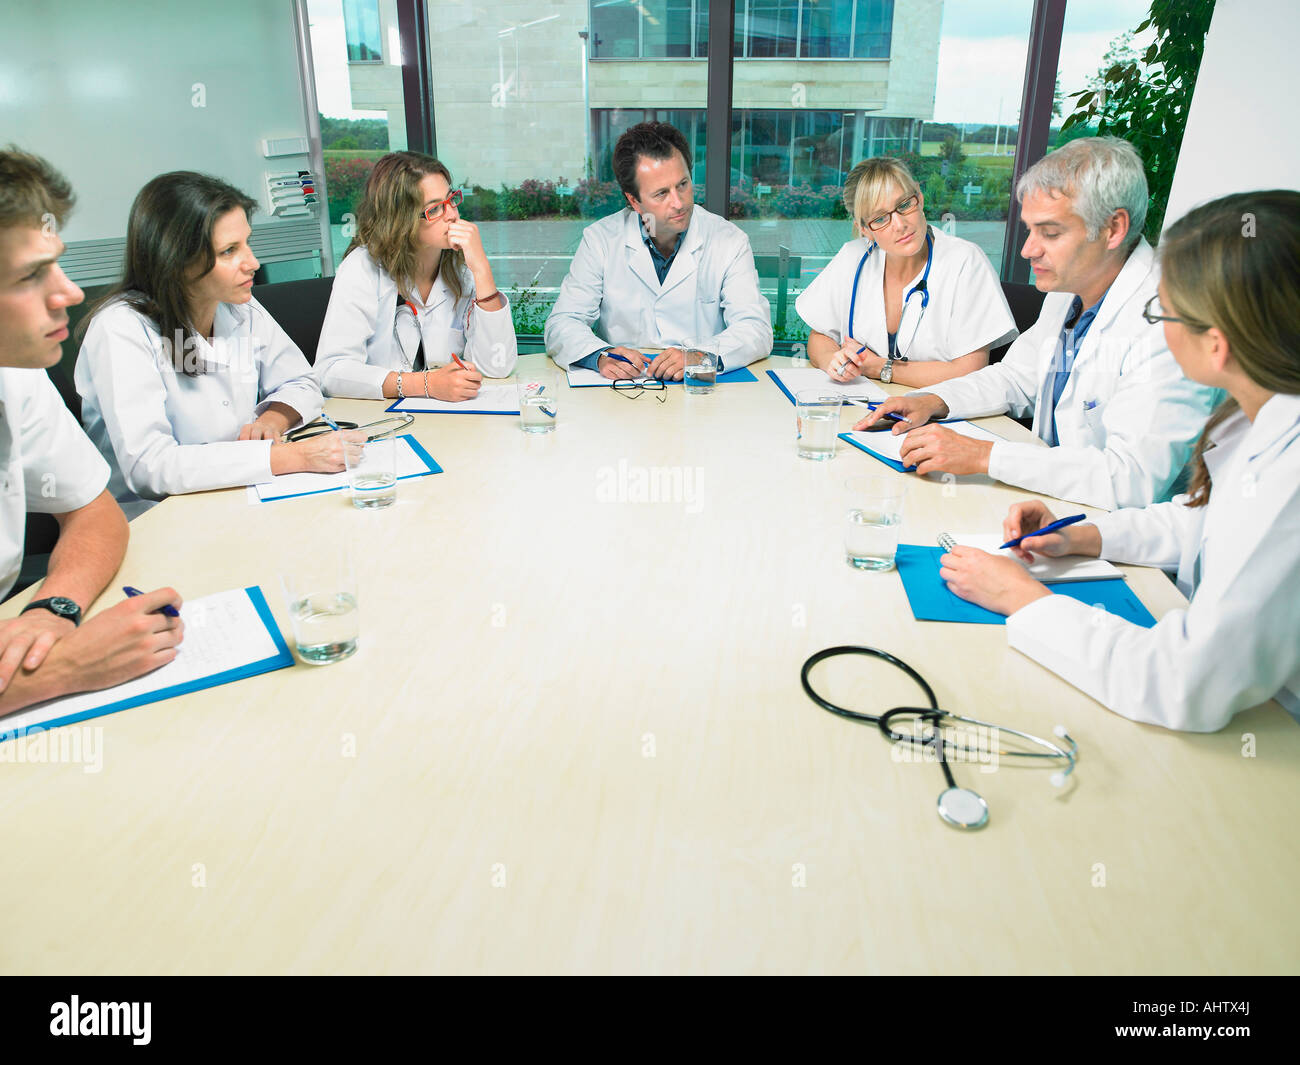 Group of doctors meeting in conference room. - Stock Image